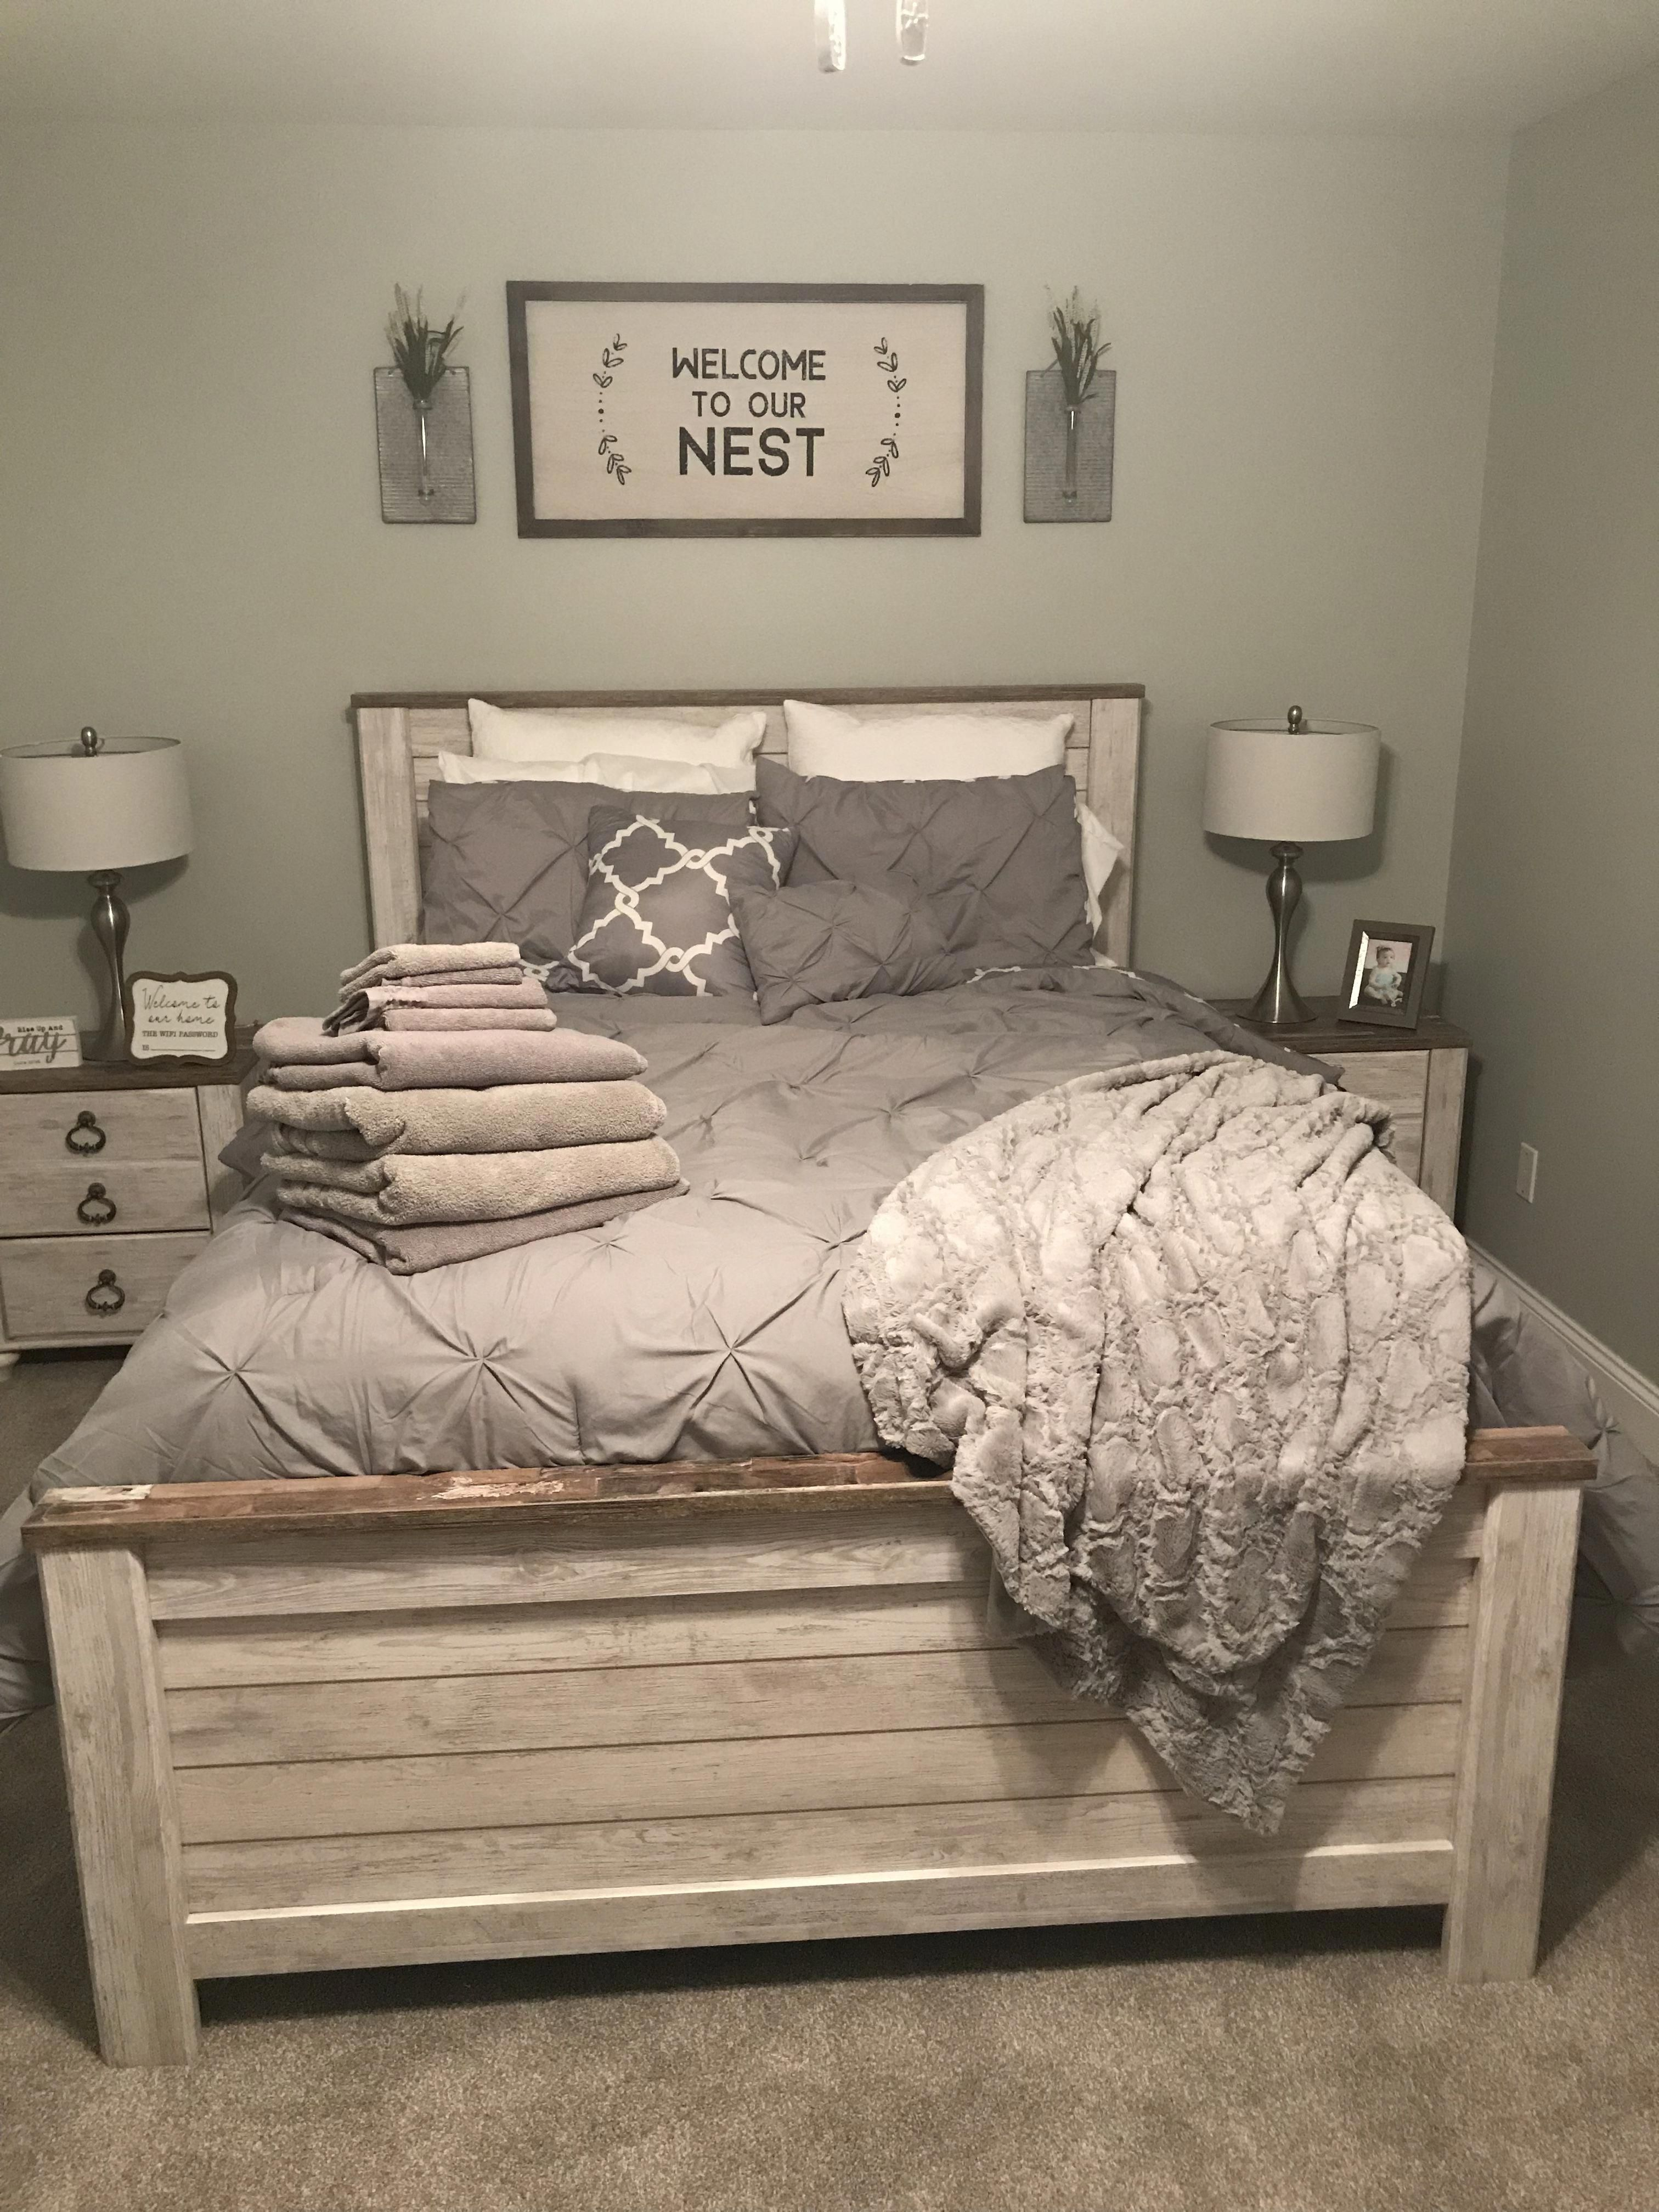 Guest Bedroom Ideas Sign From Hobby Lobby Bedding From Target Bed